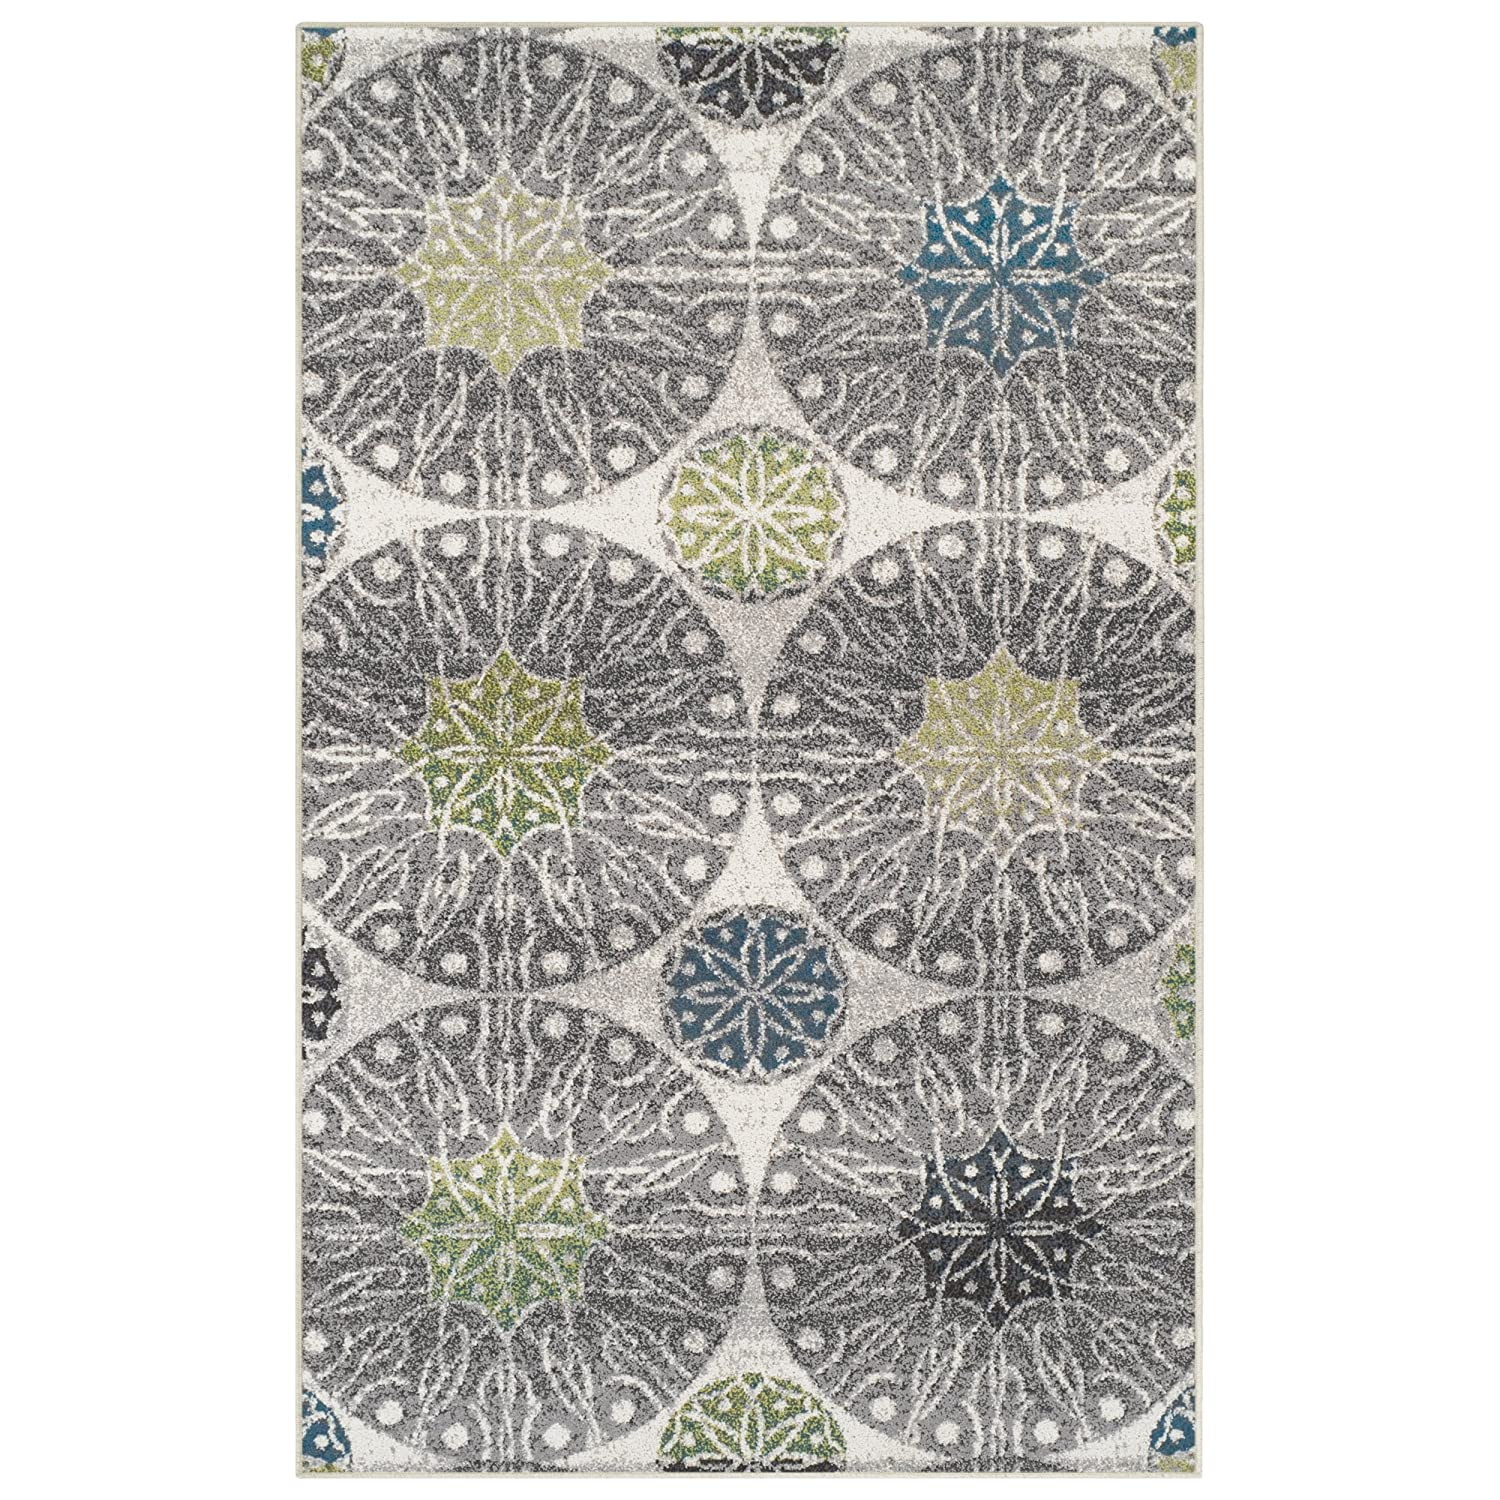 Modern Geometric Medallion Rosettes and Green Blue Black Grey Affordable Contemporary Rugs Superior Rosette Collection Area Rug 27 x 8 Runner 6mm Pile Height with Jute Backing